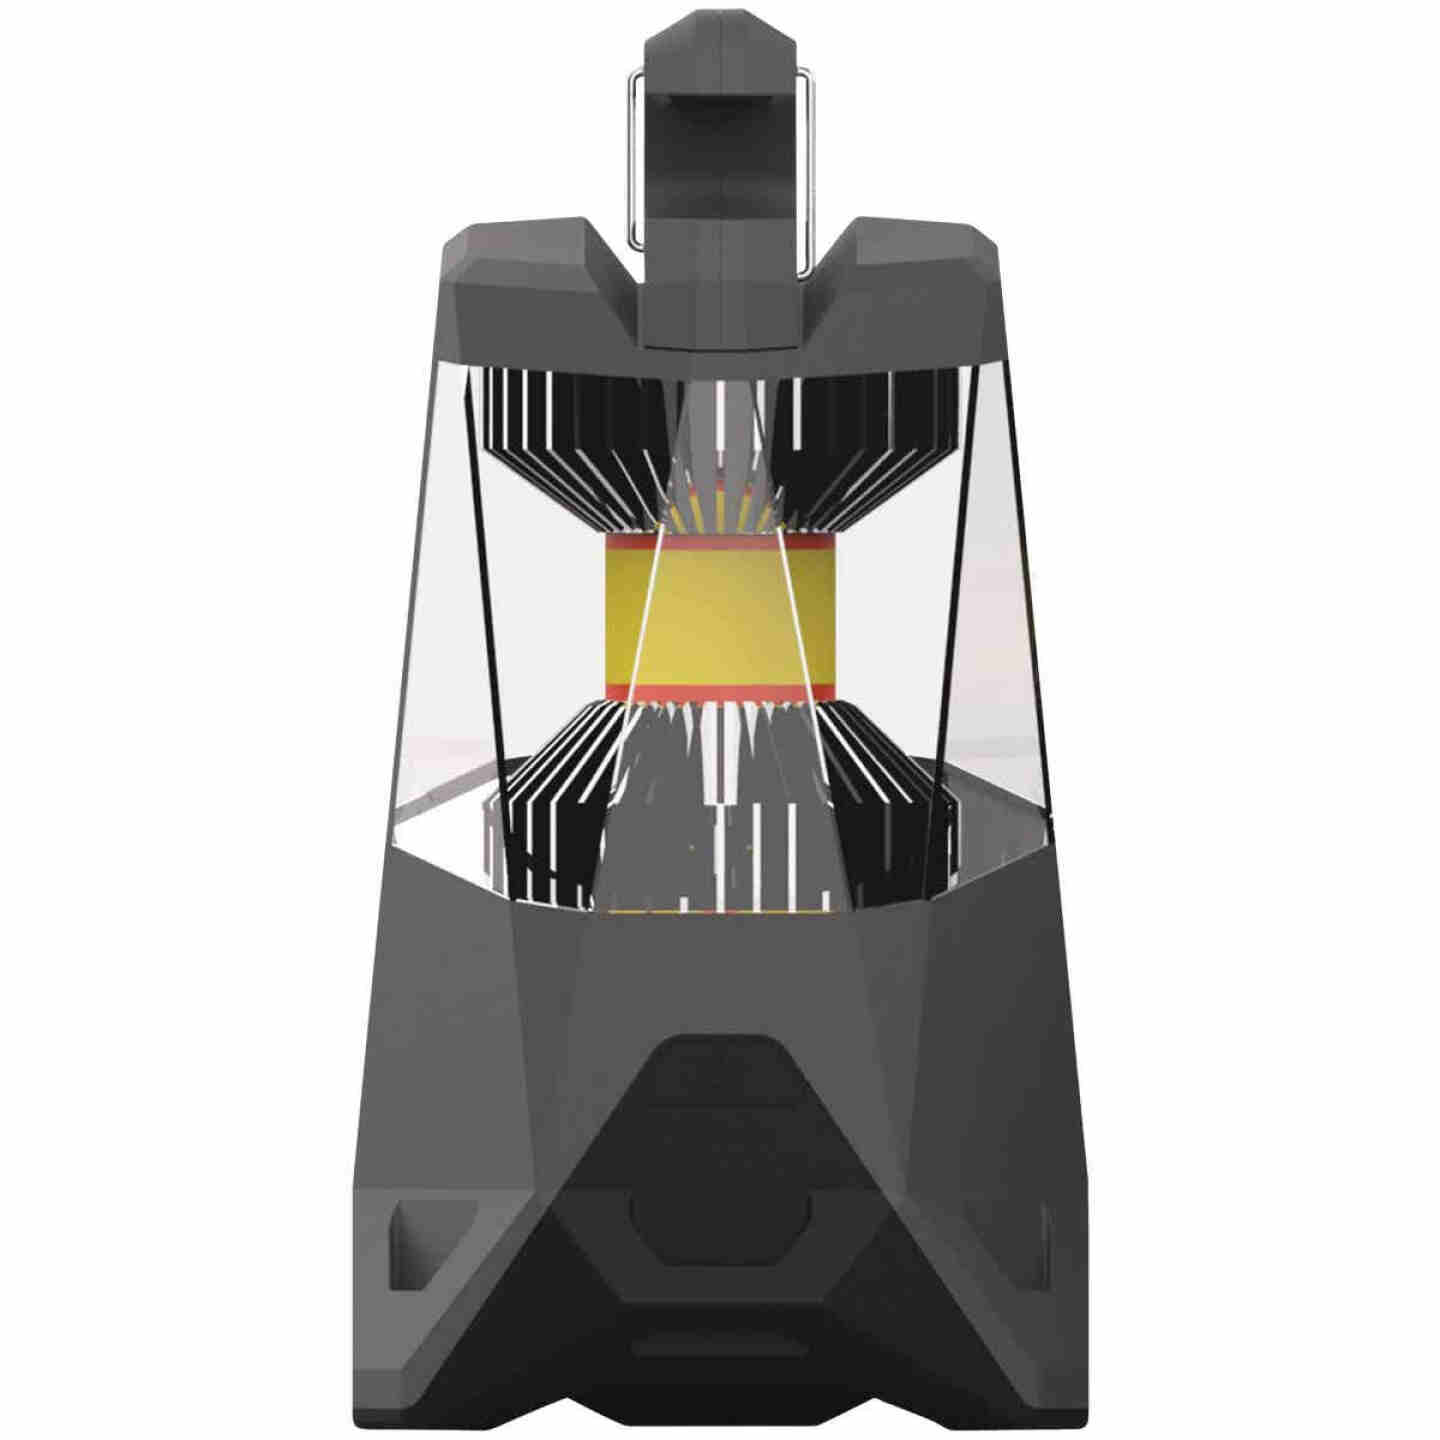 Nebo Galileo 5.5 In. W. x 10 In. H. x 5.5 In. D. Gray Rechargeable LED Lantern Image 1